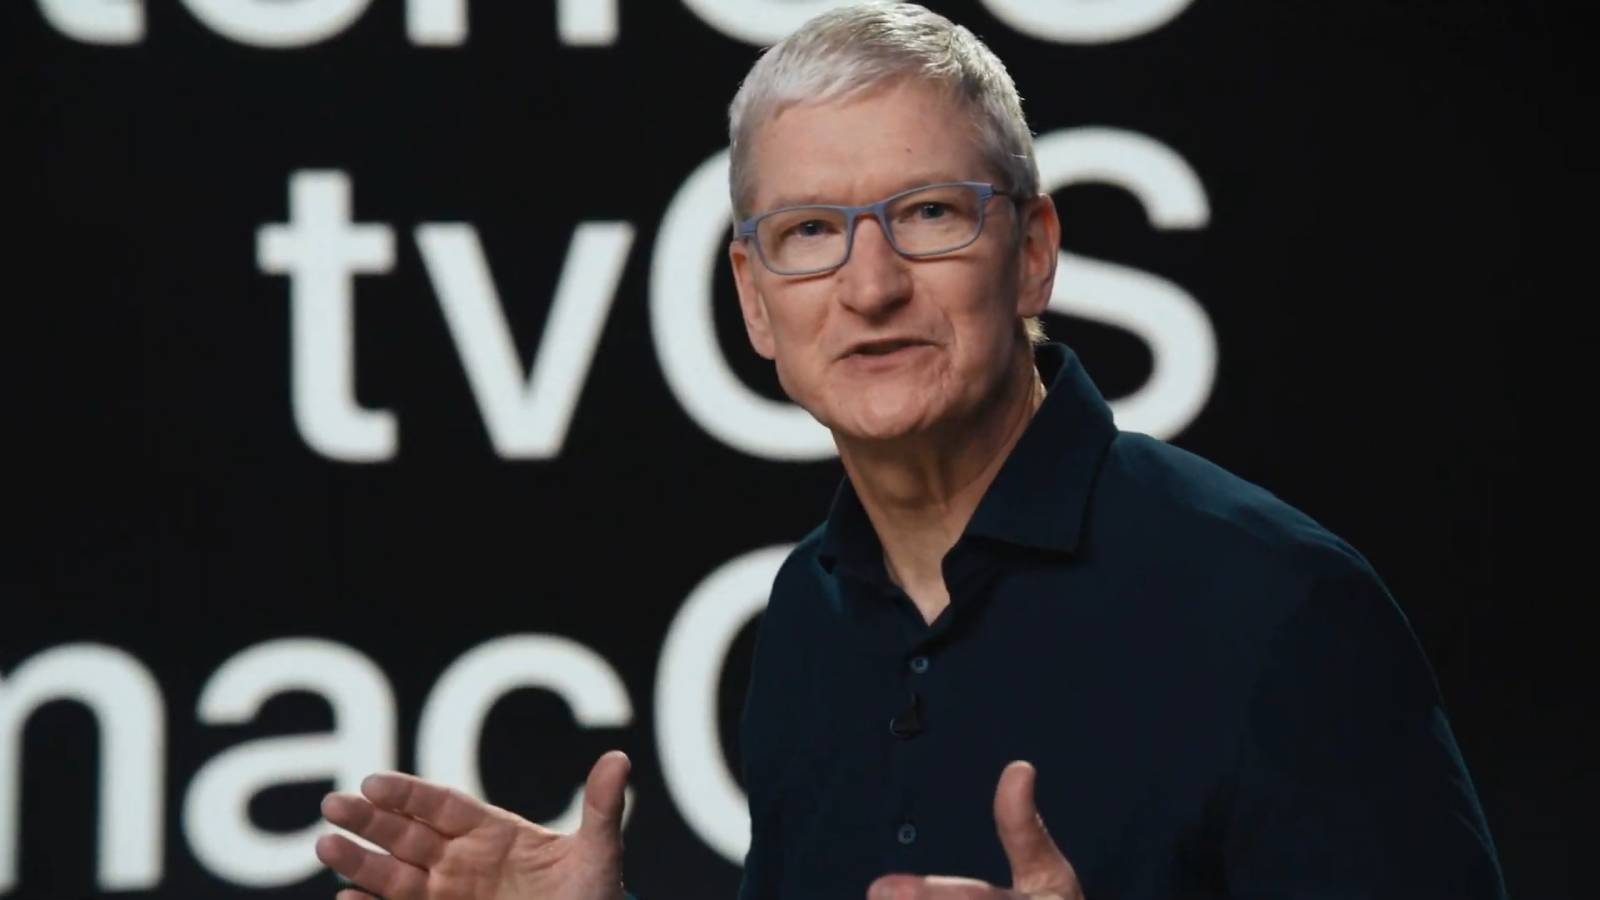 Apple CEO Tim Cook at WWDC 2020